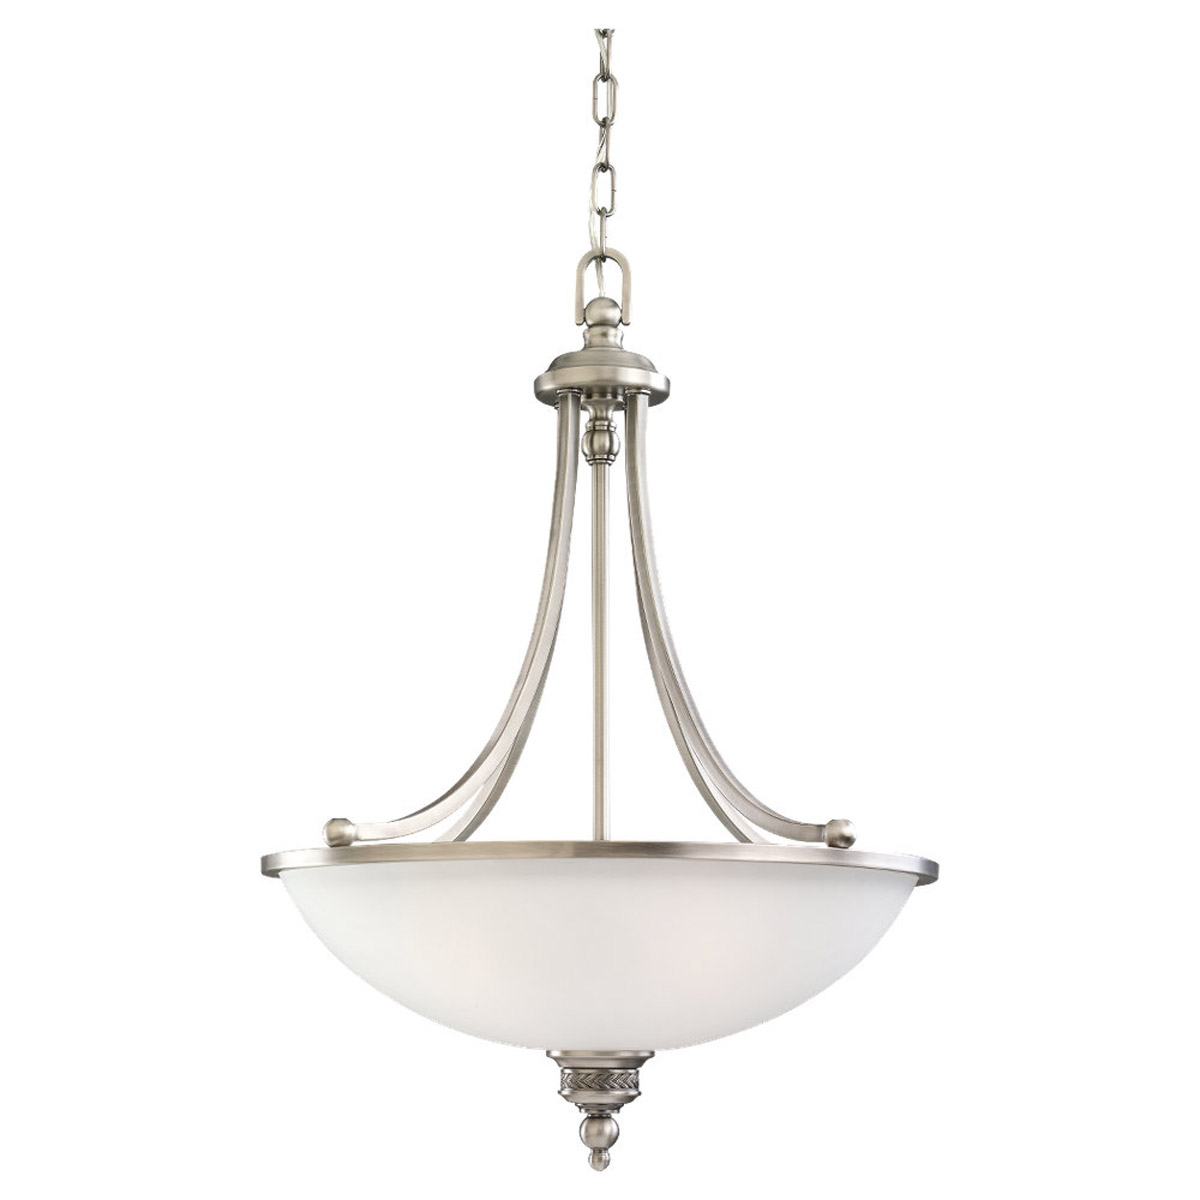 Sea Gull Lighting Laurel Leaf 3 Light Pendant in Antique Brushed Nickel 65351-965 photo